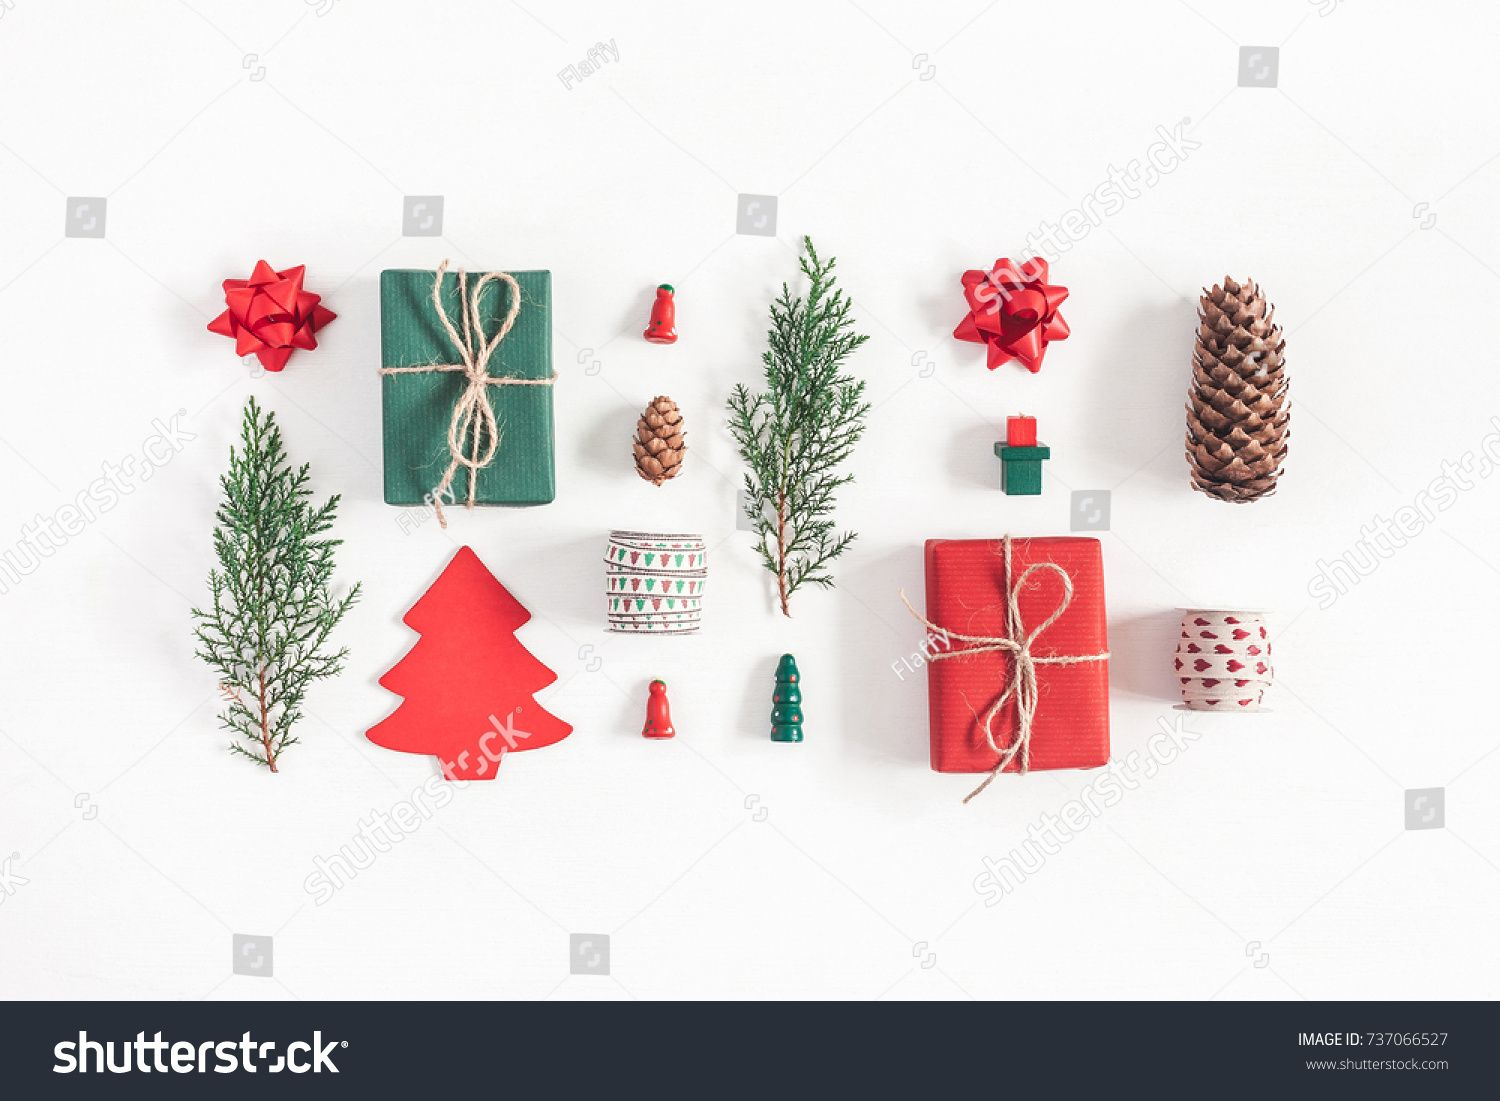 Christmas Top View.Christmas Composition Christmas Gifts Pine Branches Toys